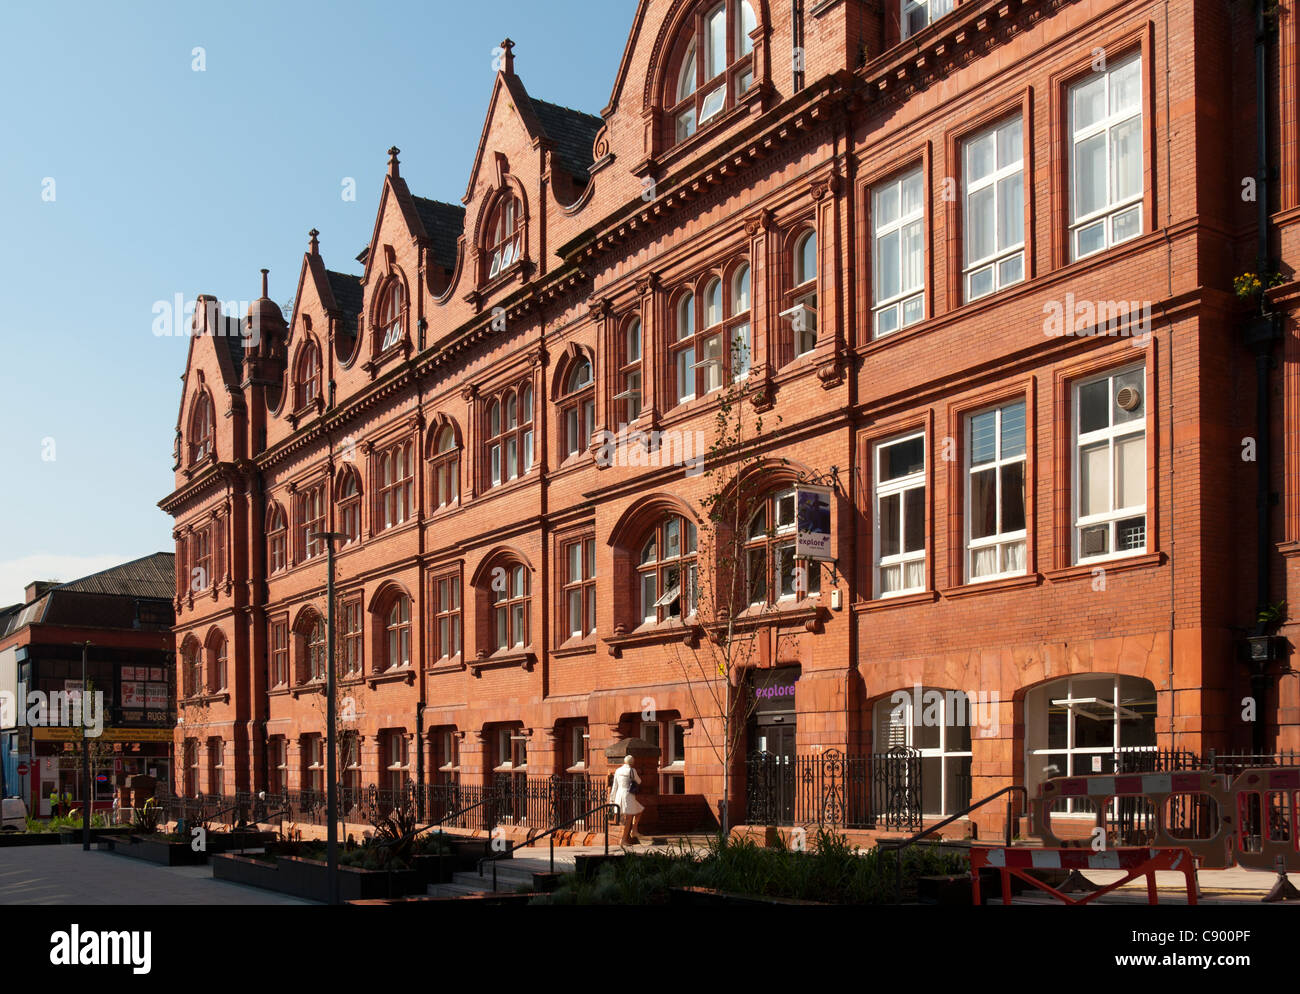 Wigan Public Library.  Alfred Waterhouse, 1878. Now houses the Museum of Wigan Life.  Wigan, Greater Manchester, - Stock Image